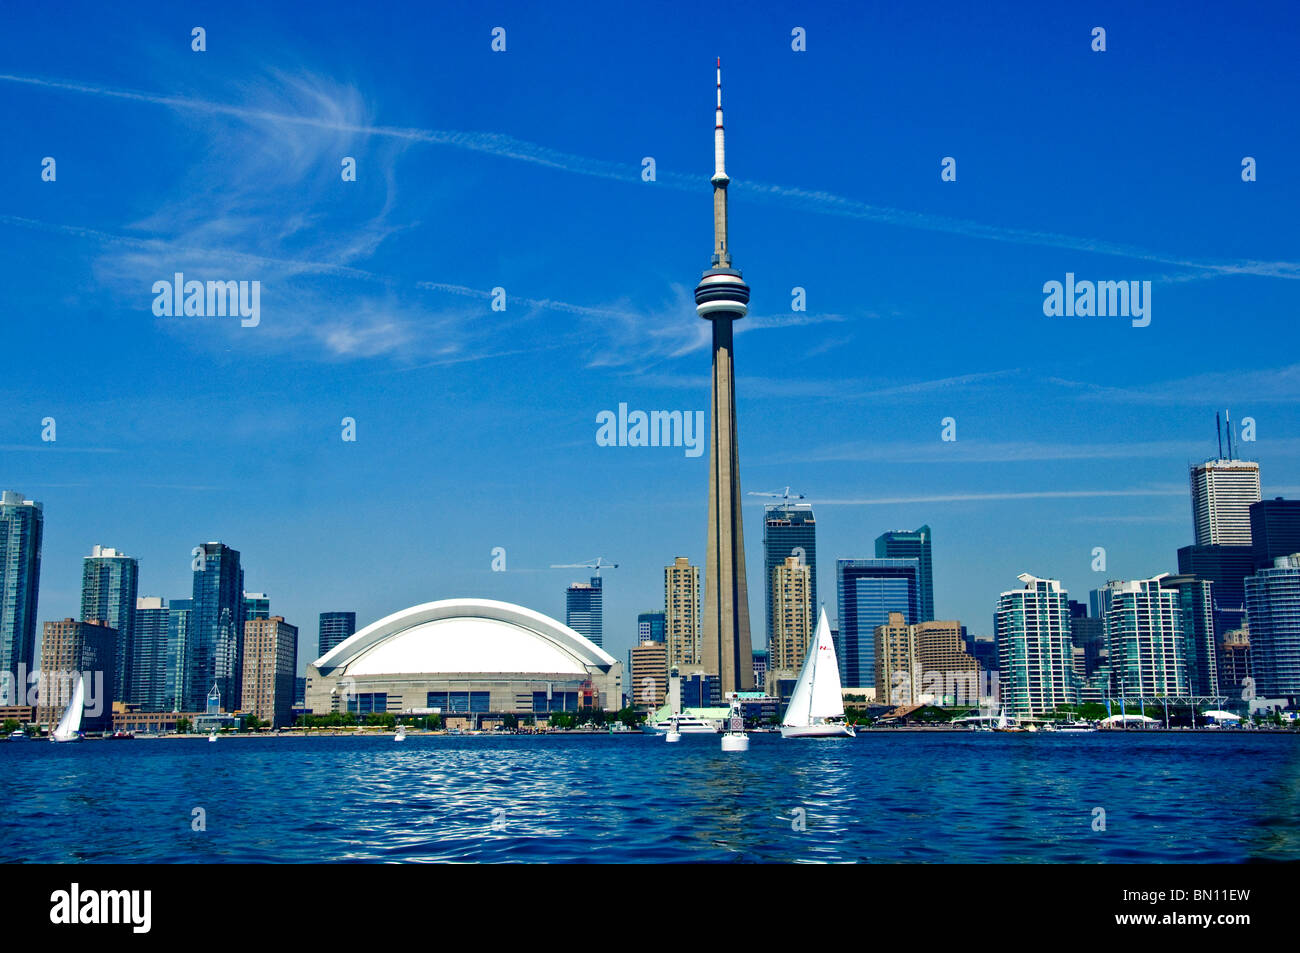 toronto skyline and waterfront - Stock Image